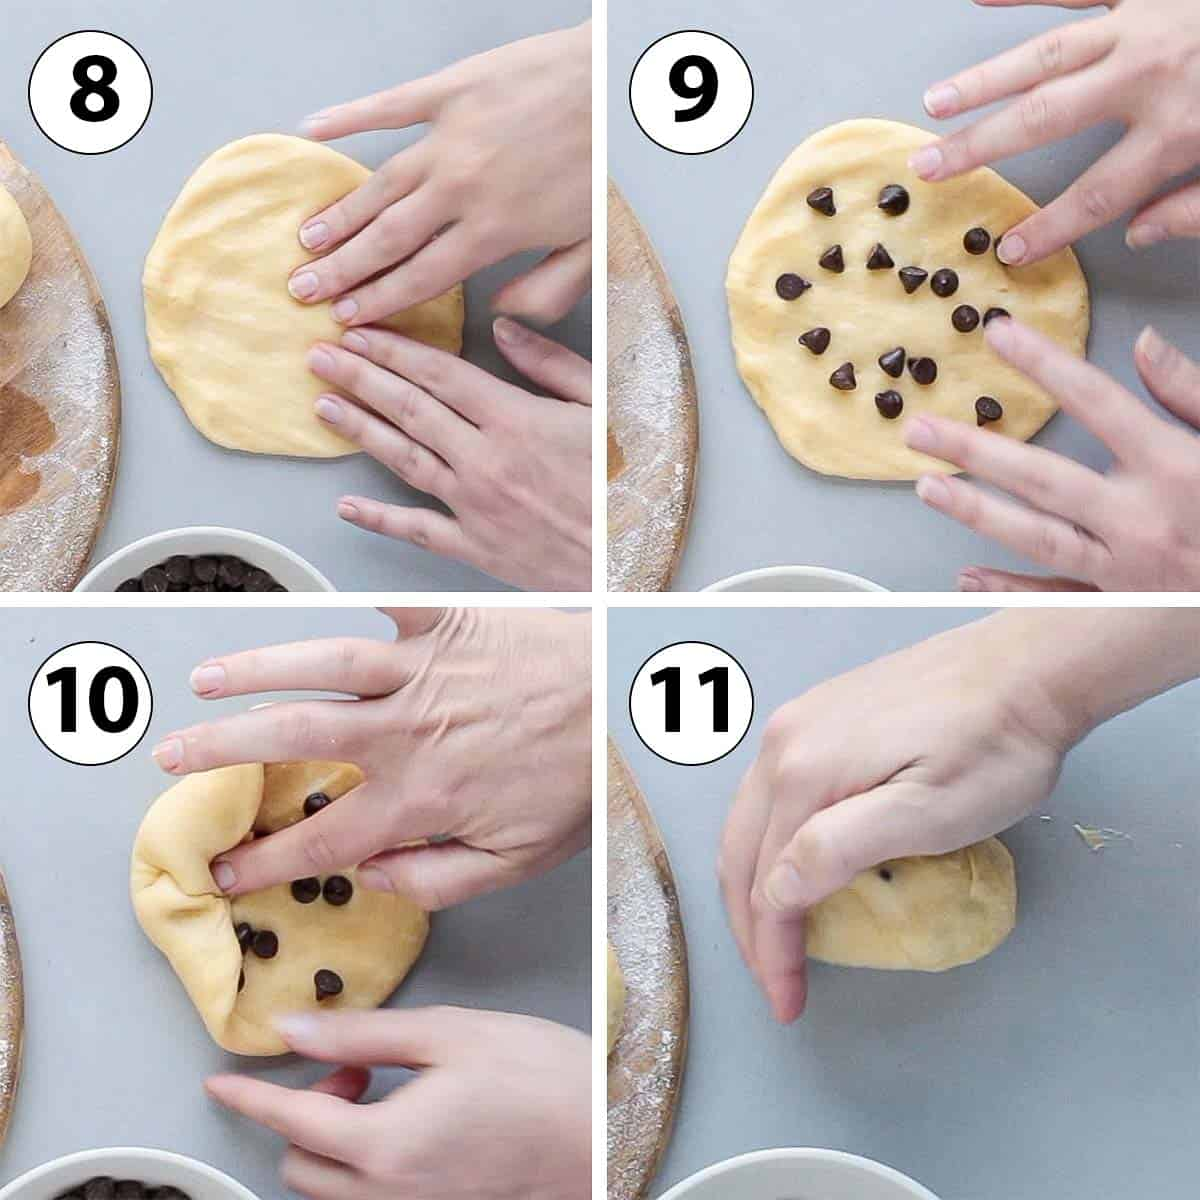 Process Shot Collage: shaping the dough into individual rolls.